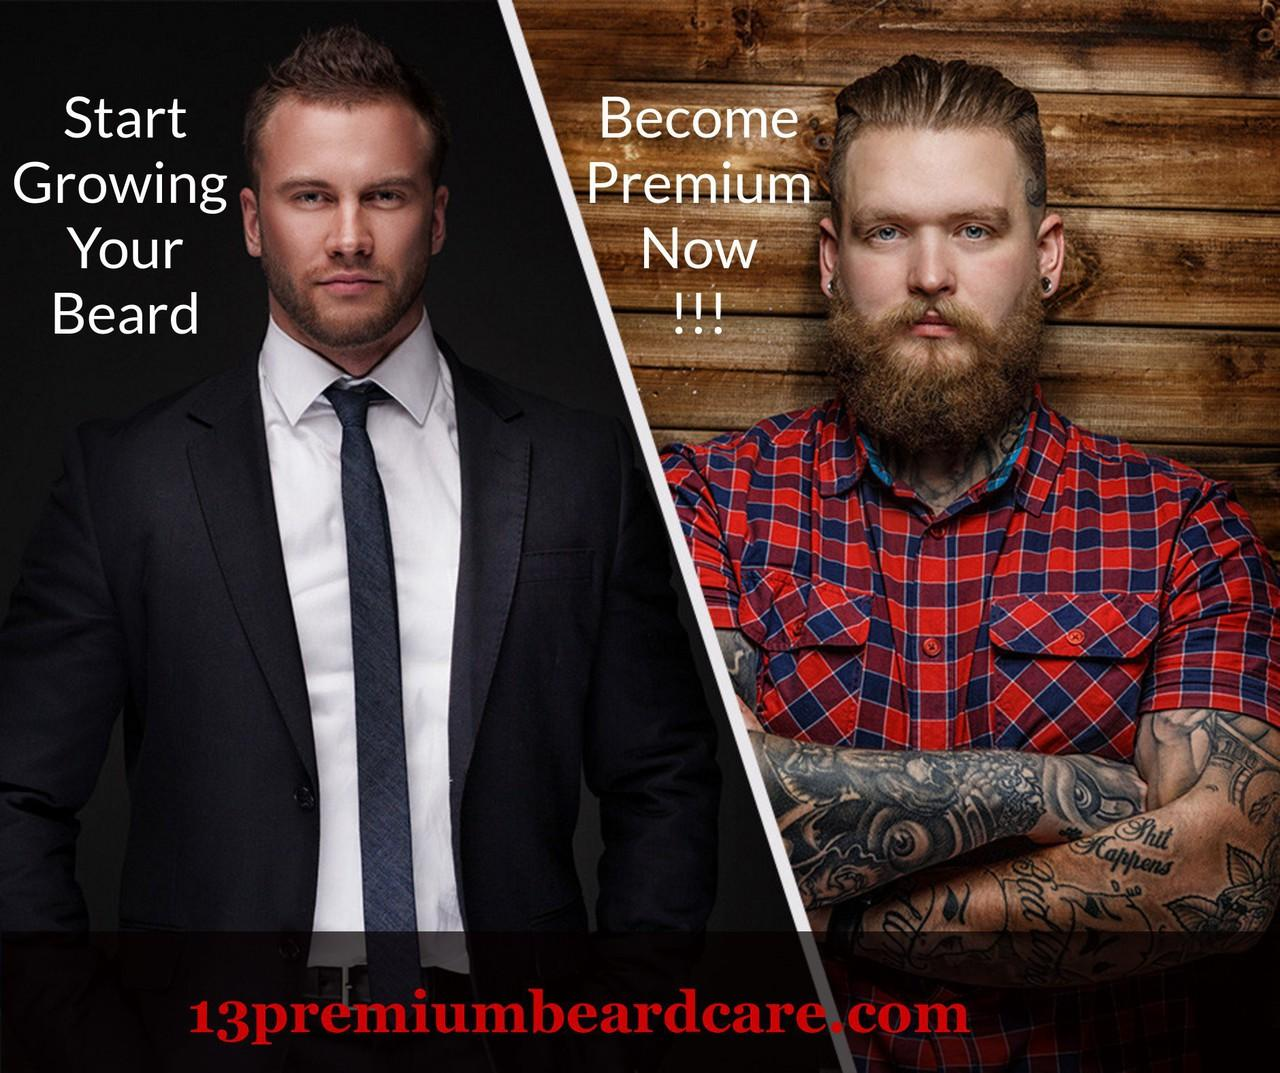 13premiumbeardcare.com become premium now